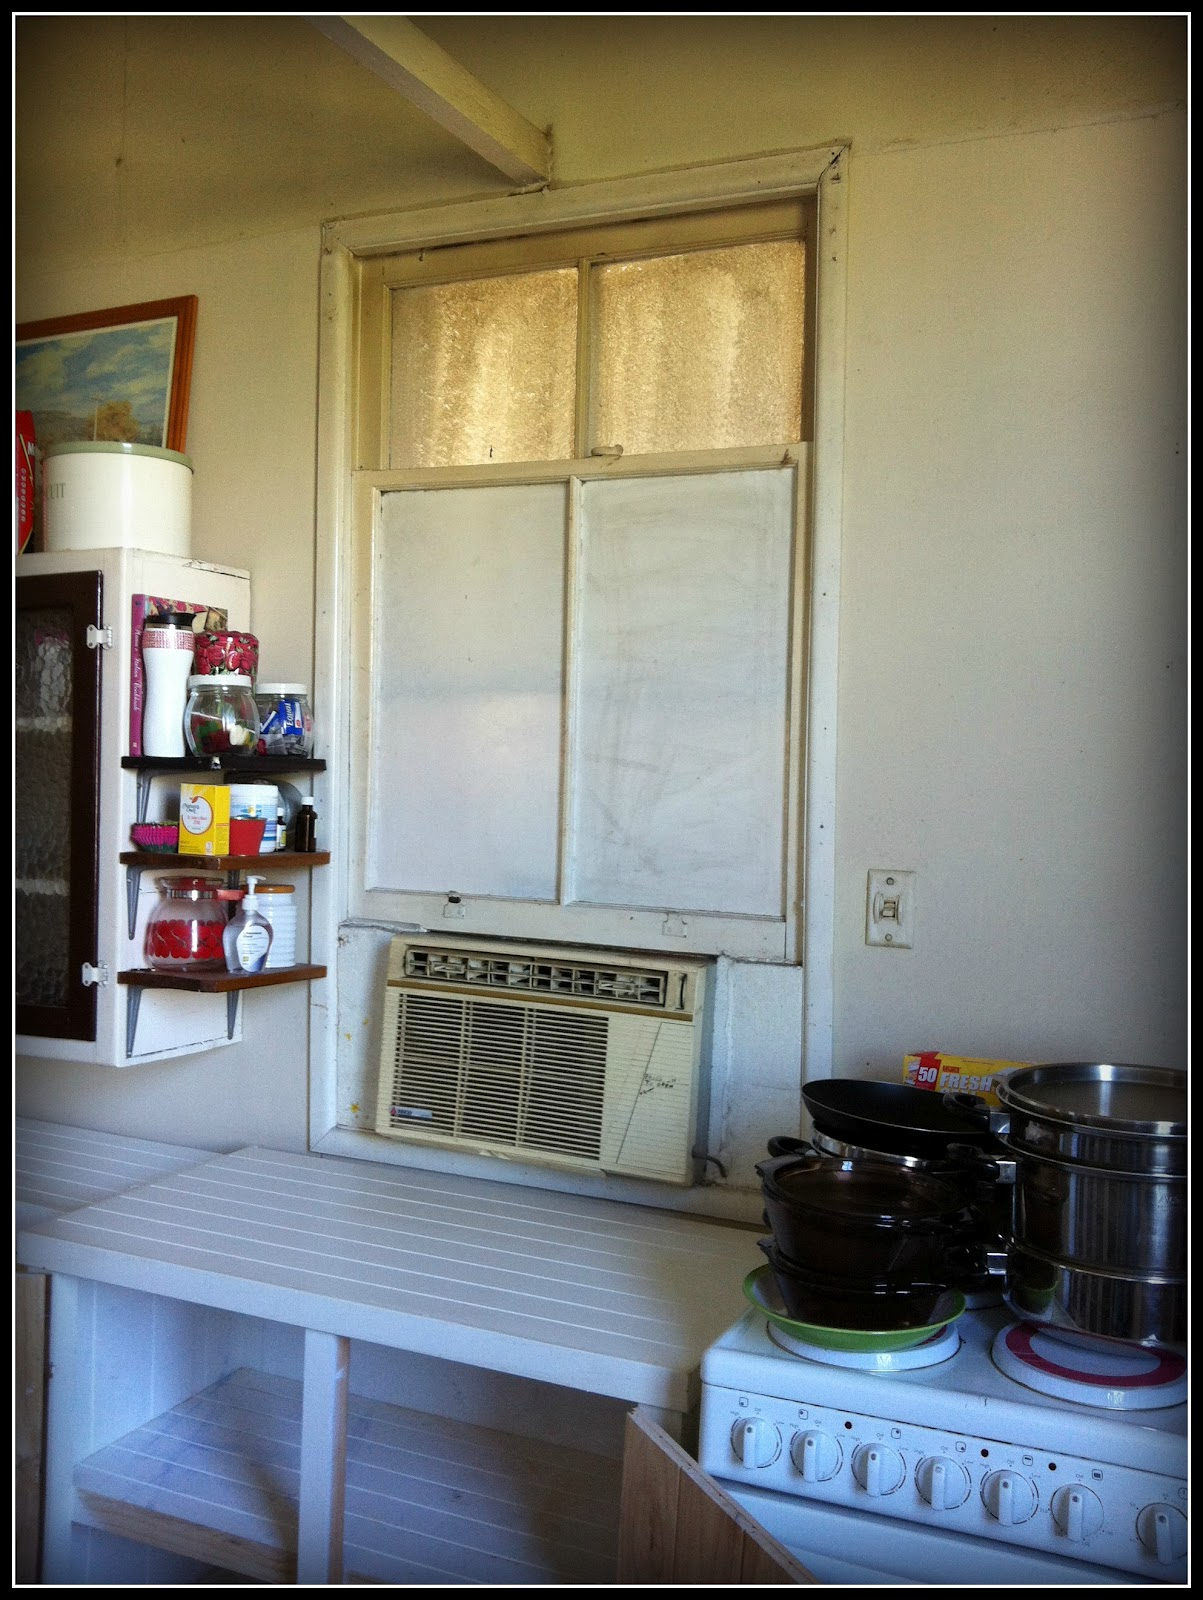 Flat Pack Kitchen Cupboards Thebouselife A Little Kitchen Reno In This Shabby Old